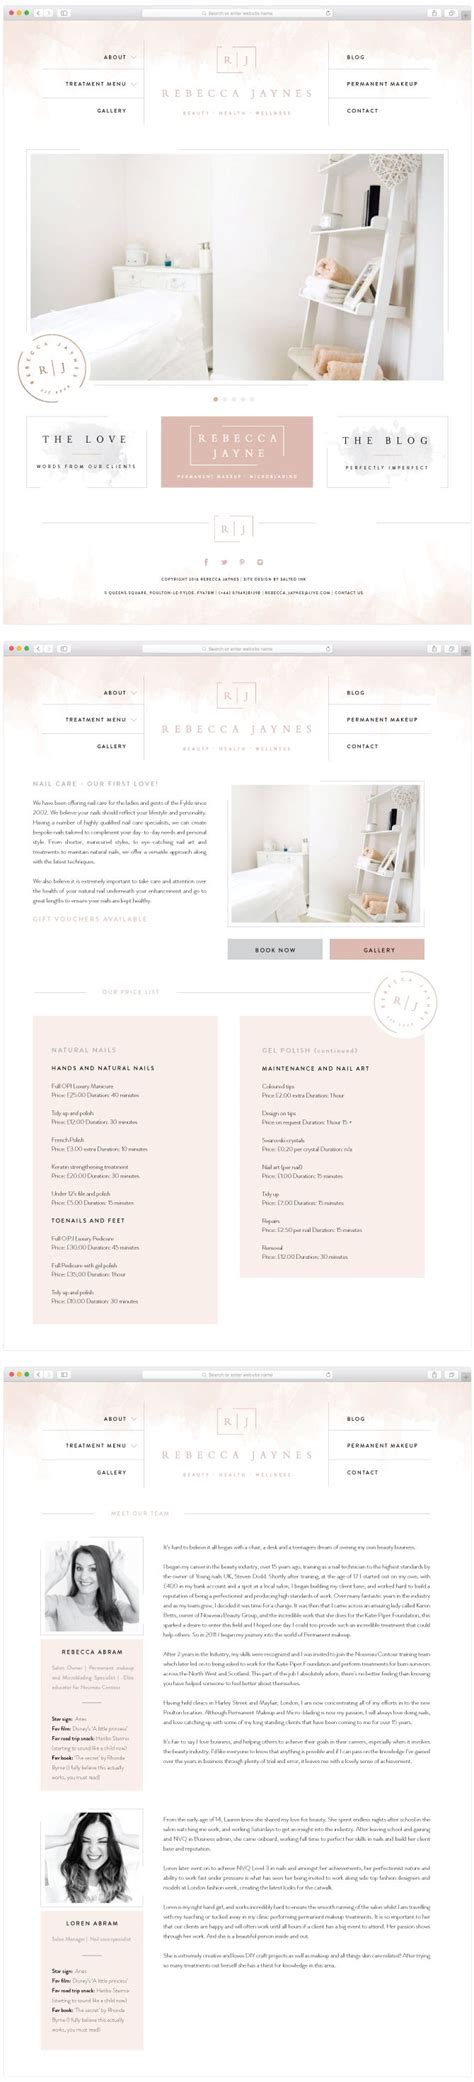 spa website inspiration 25 best ideas about salon logo on pinterest beauty